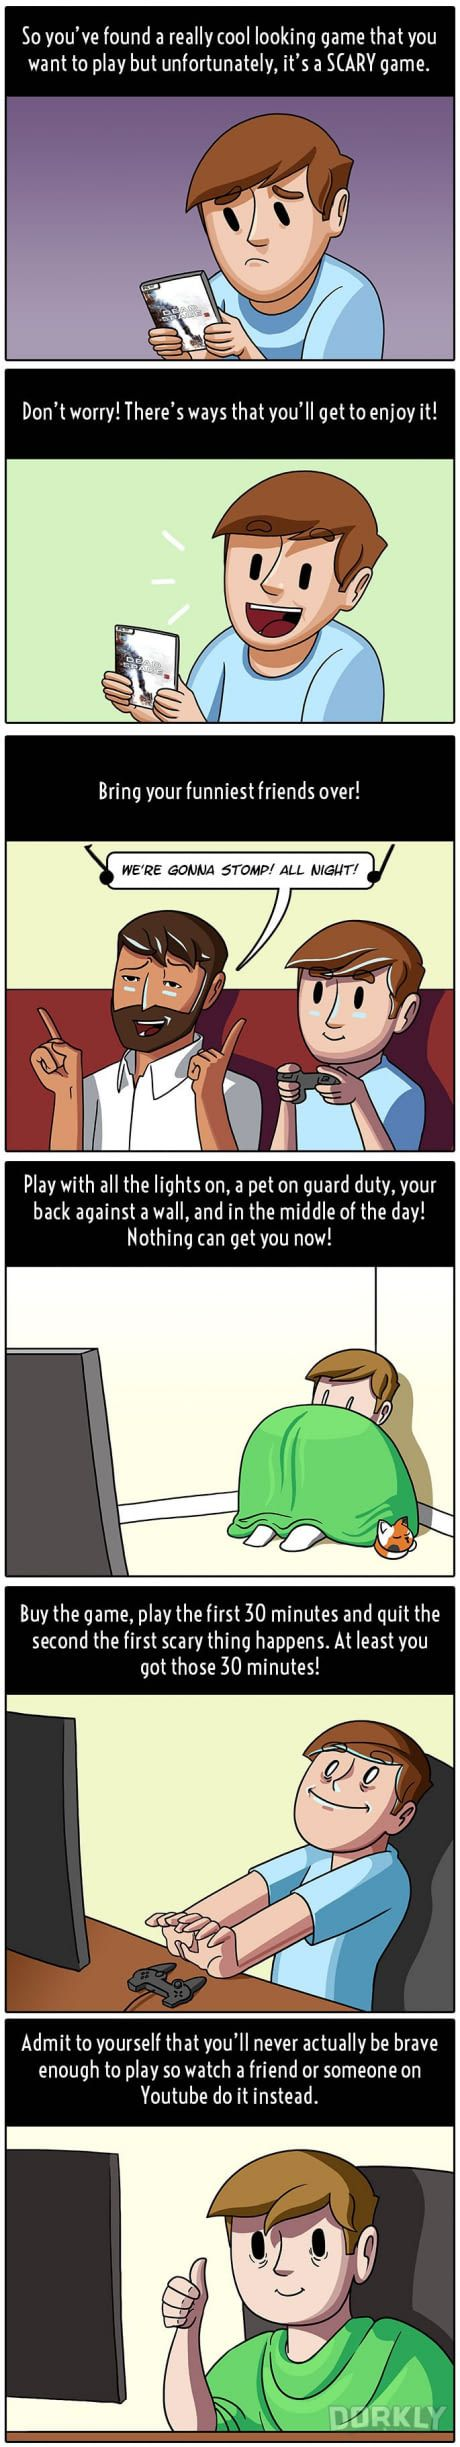 How To Play Scary Games For Scaredy Cats